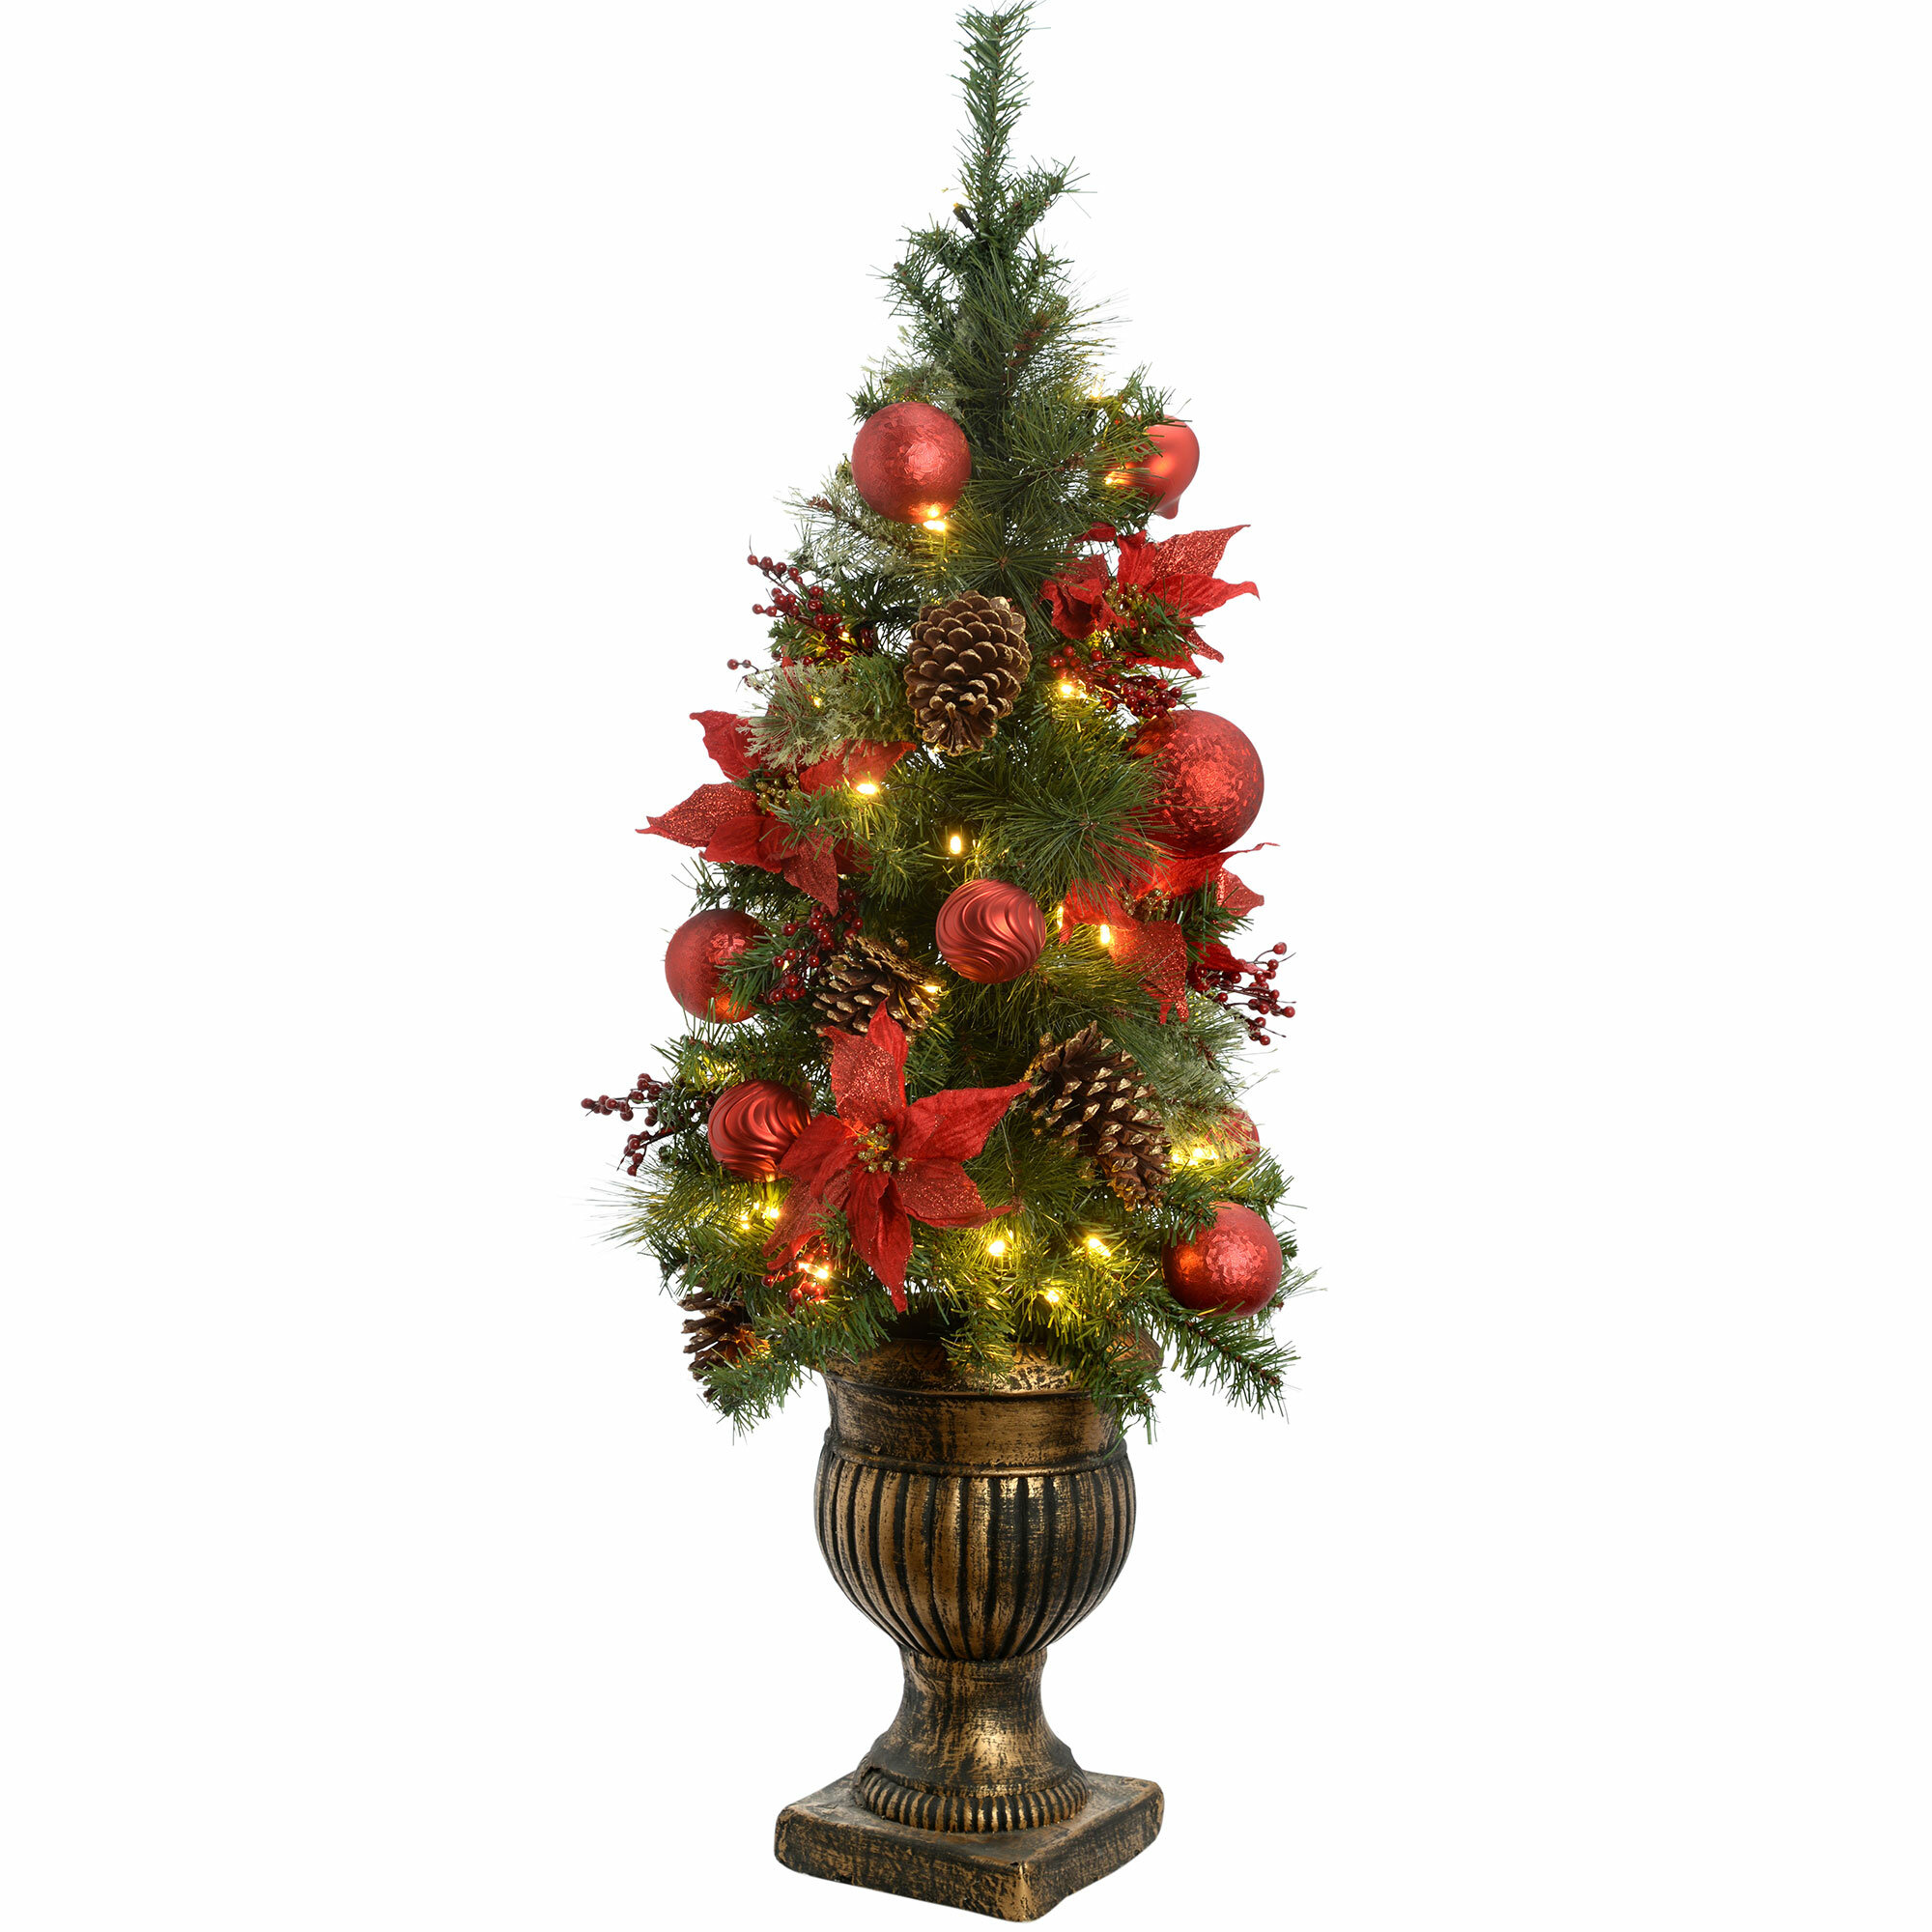 4ft Christmas Tree.Potted 4ft Green Pine Artificial Christmas Tree With 50 Clear White Lights With Pot